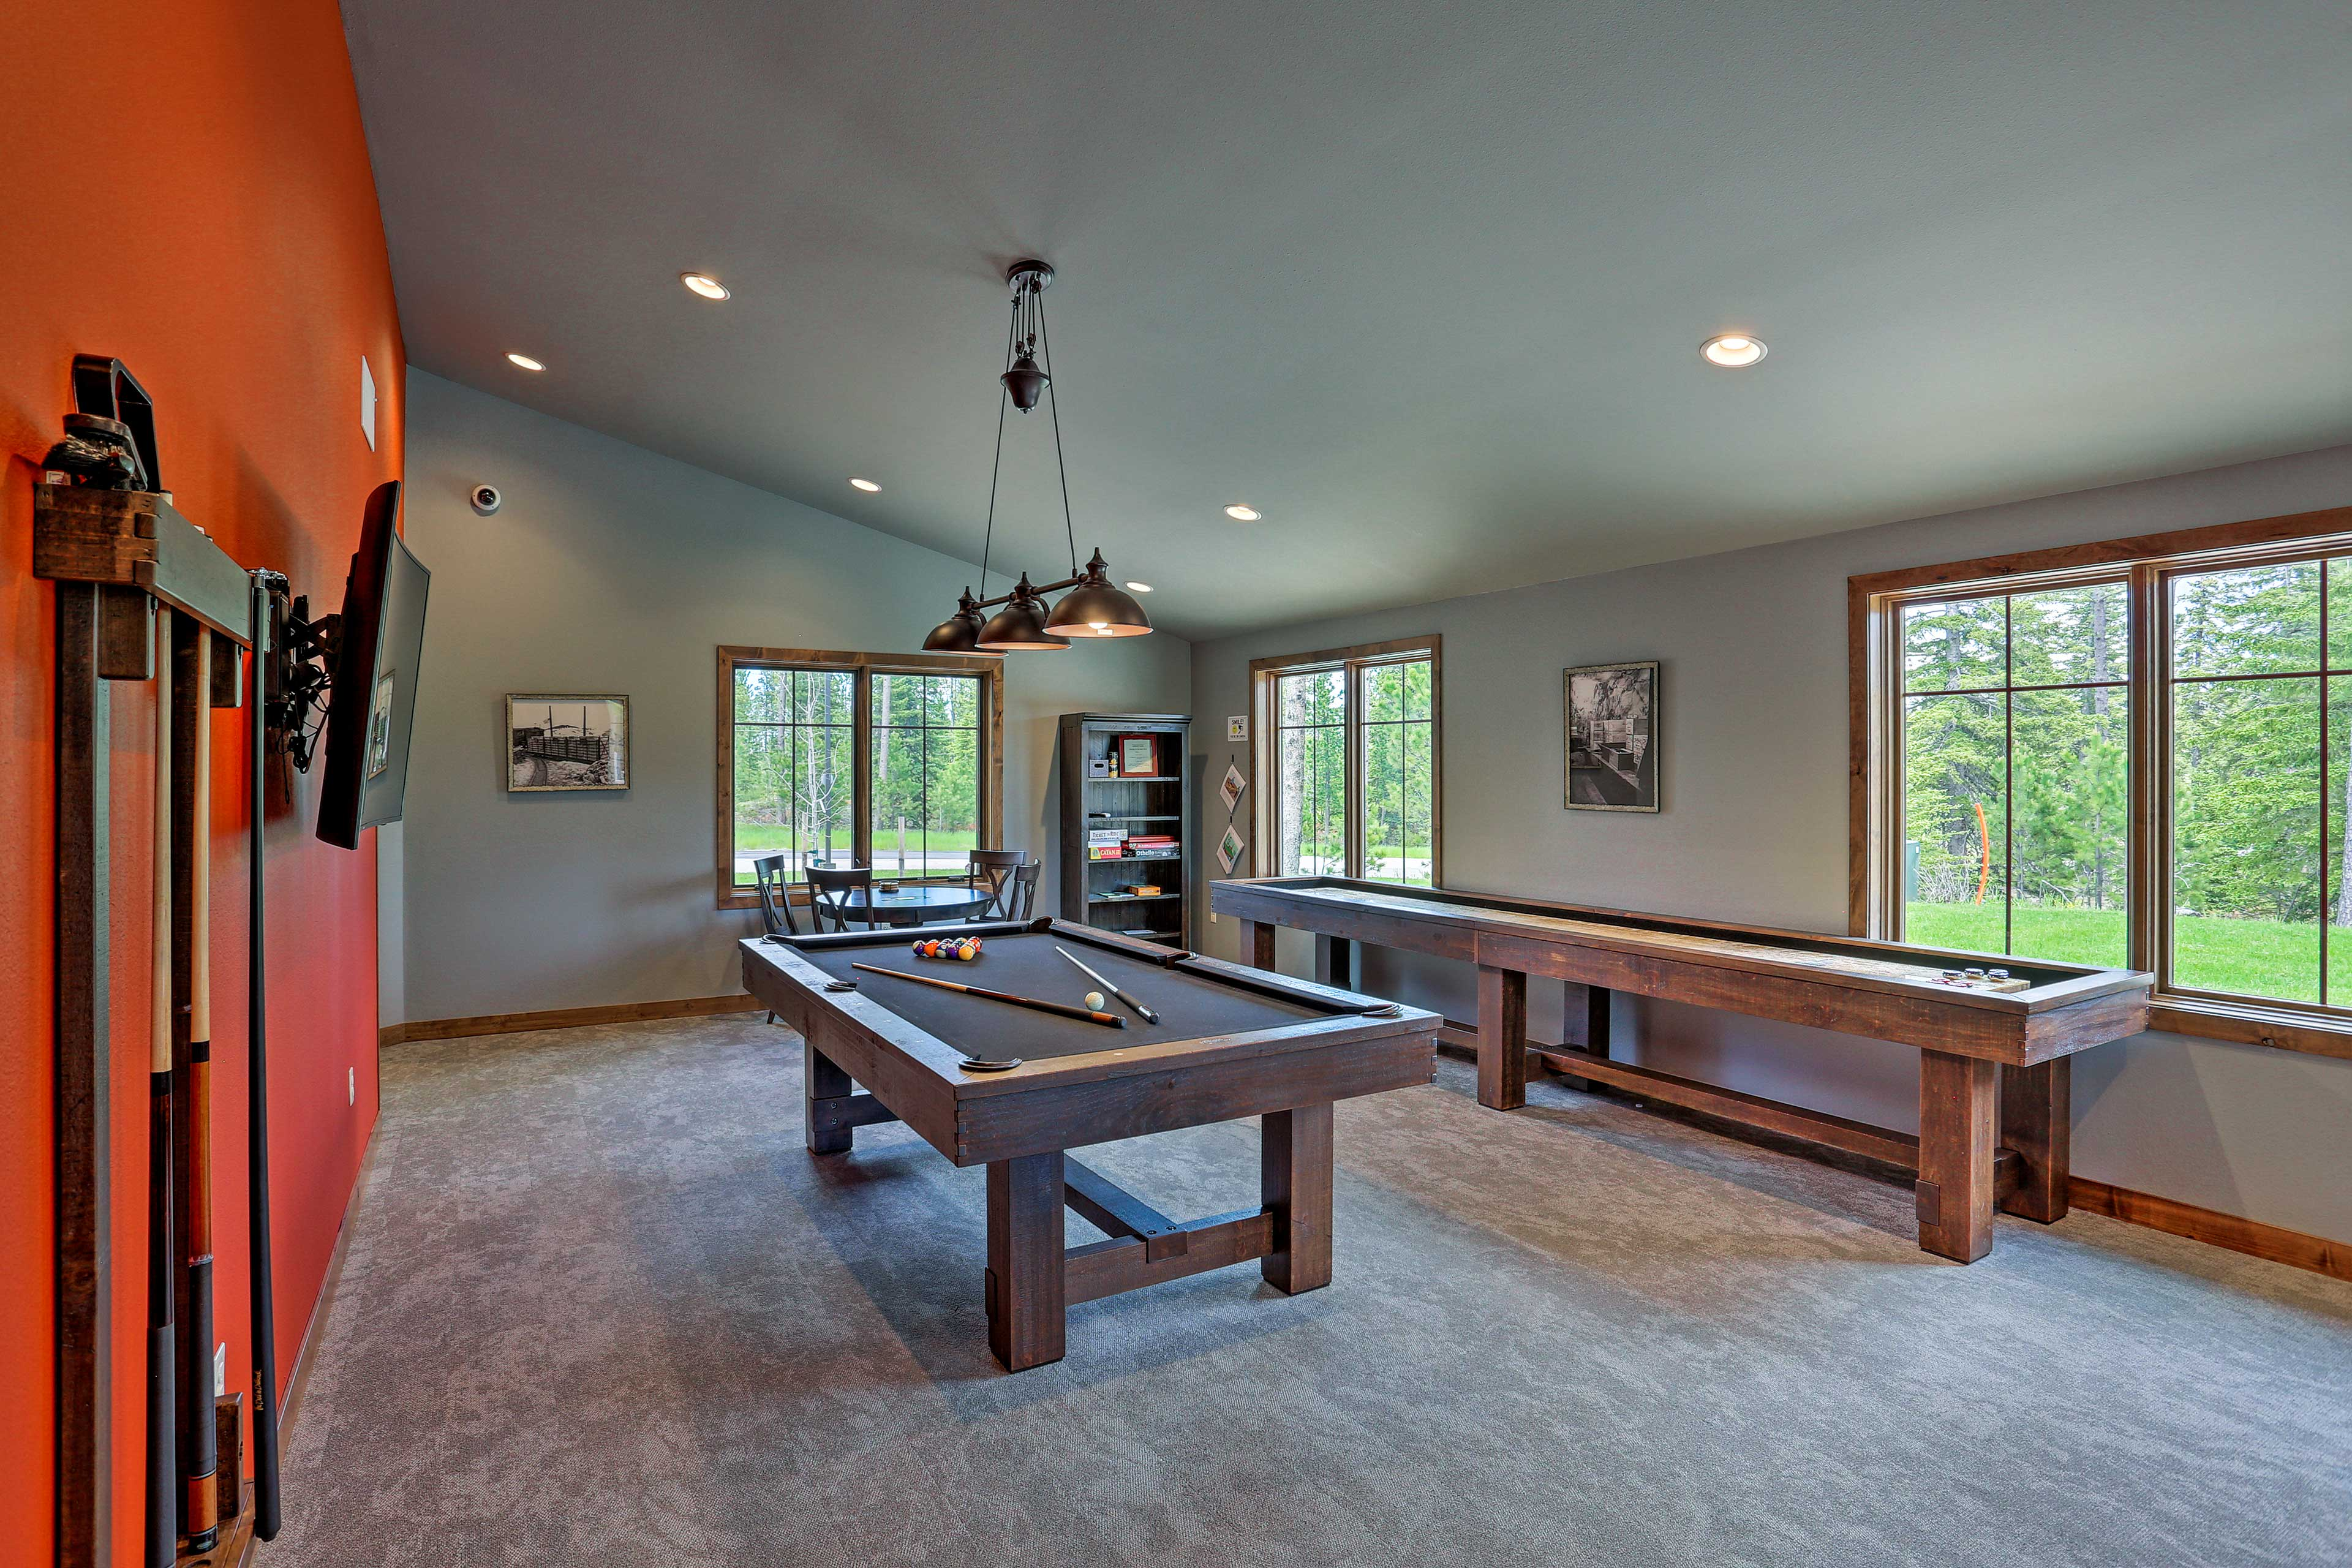 Shuffleboard, pool, or board games; the choice is yours!